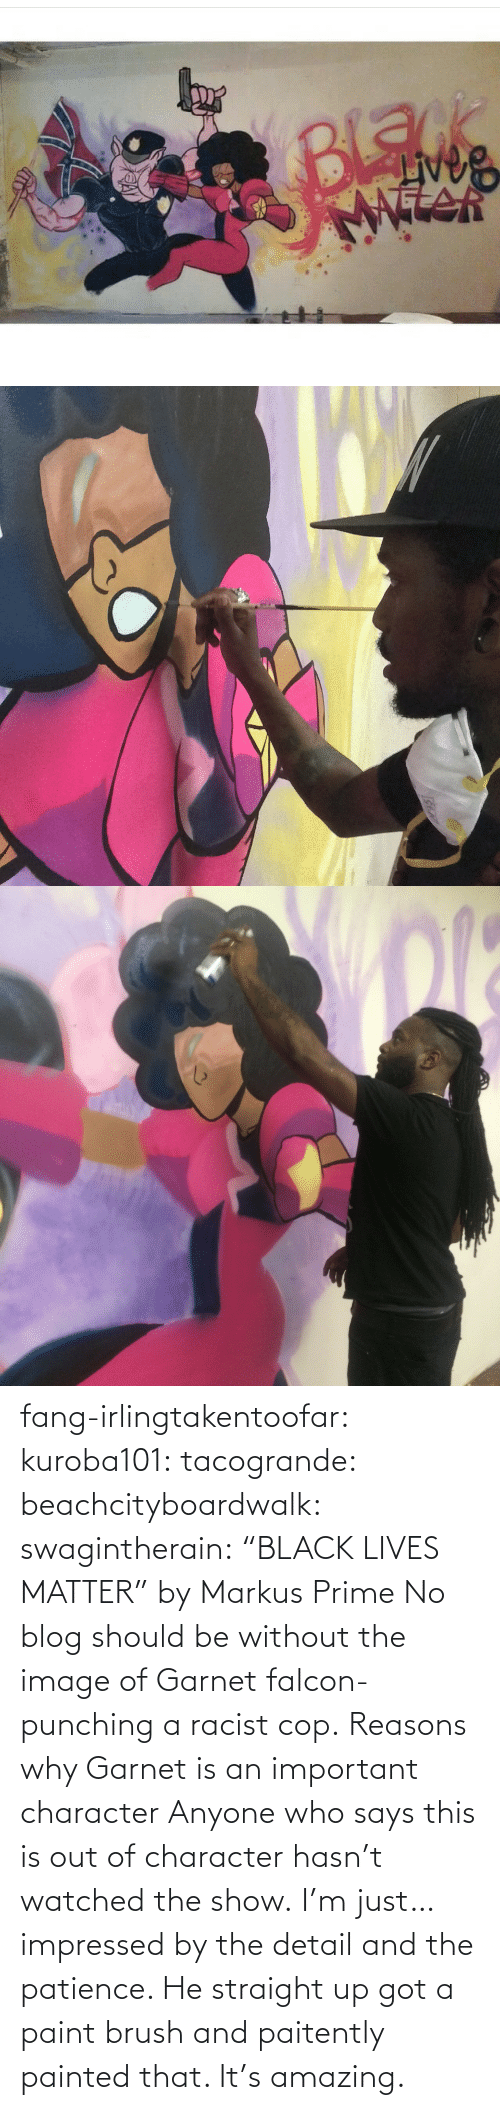 "anyone: fang-irlingtakentoofar:  kuroba101:  tacogrande:  beachcityboardwalk:  swagintherain:  ""BLACK LIVES MATTER"" by Markus Prime    No blog should be without the image of Garnet falcon-punching a racist cop.  Reasons why Garnet is an important character  Anyone who says this is out of character hasn't watched the show.    I'm just… impressed by the detail and the patience. He straight up got a paint brush and paitently painted that. It's amazing."